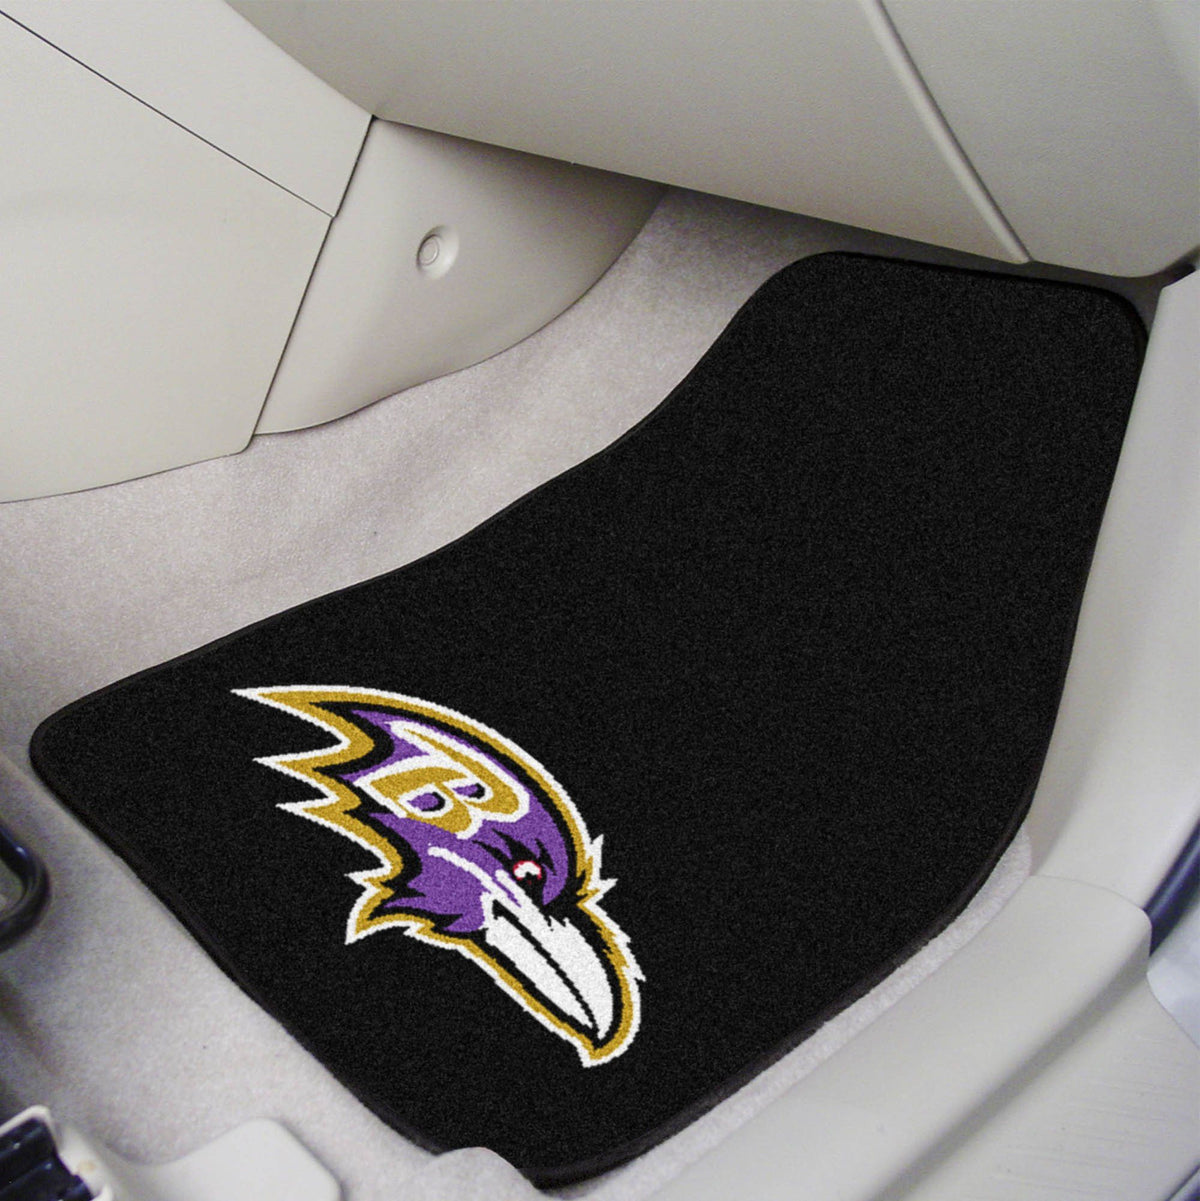 "NFL - 2-pc Carpet Car Mat Set, 17"" x 27"" NFL Mats, Front Car Mats, 2-pc Carpet Car Mat Set, NFL, Auto Fan Mats Baltimore Ravens"